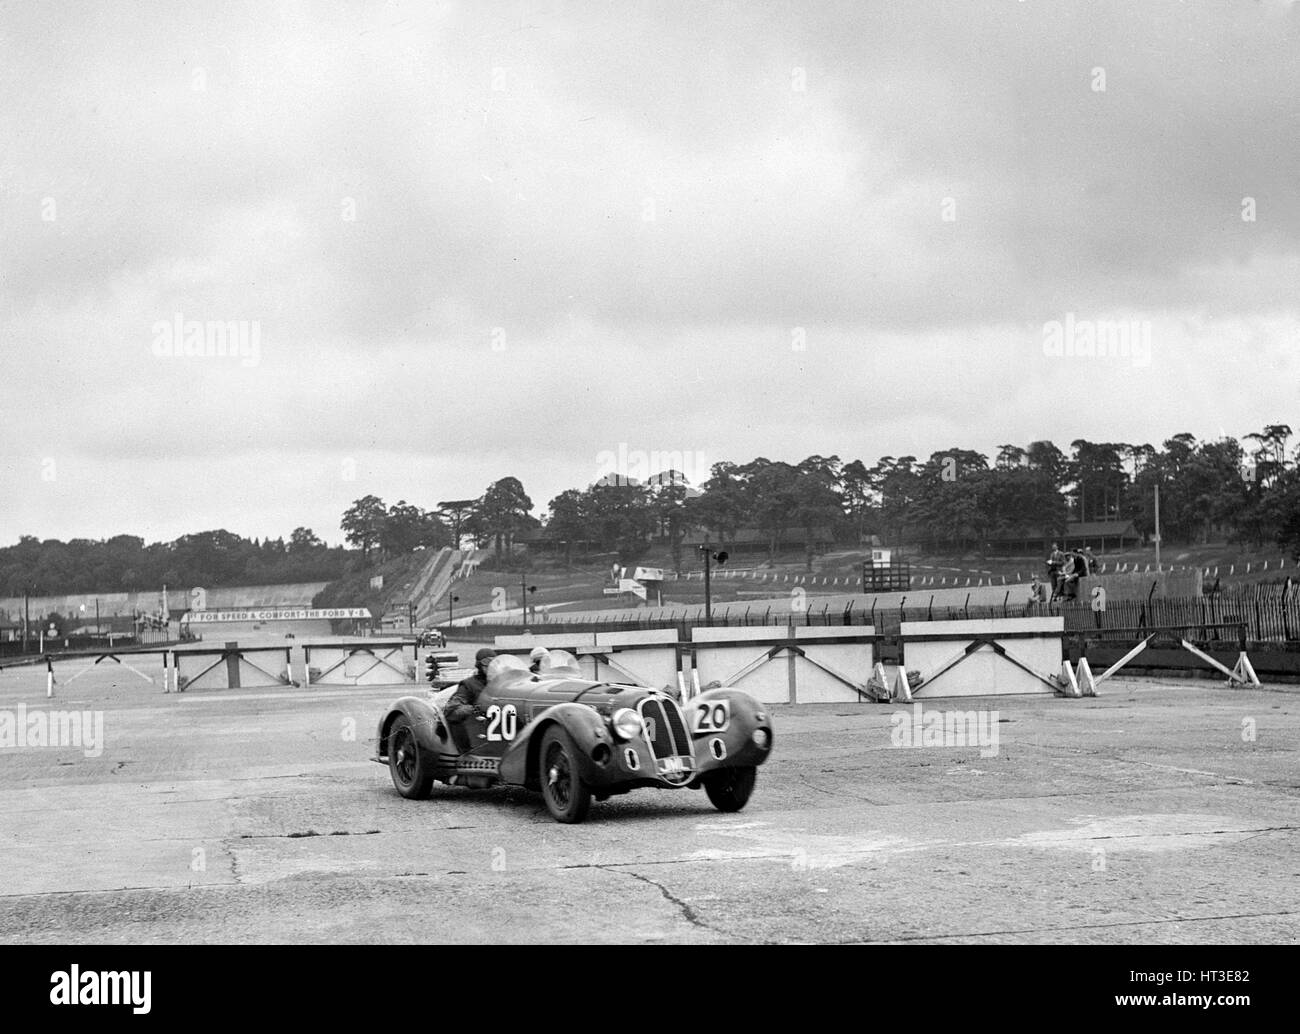 HC Hunter's Alfa Romeo driving through the chicane, JCC Members' Day, Brooklands, 8 July 1939. Artist: Bill - Stock Image